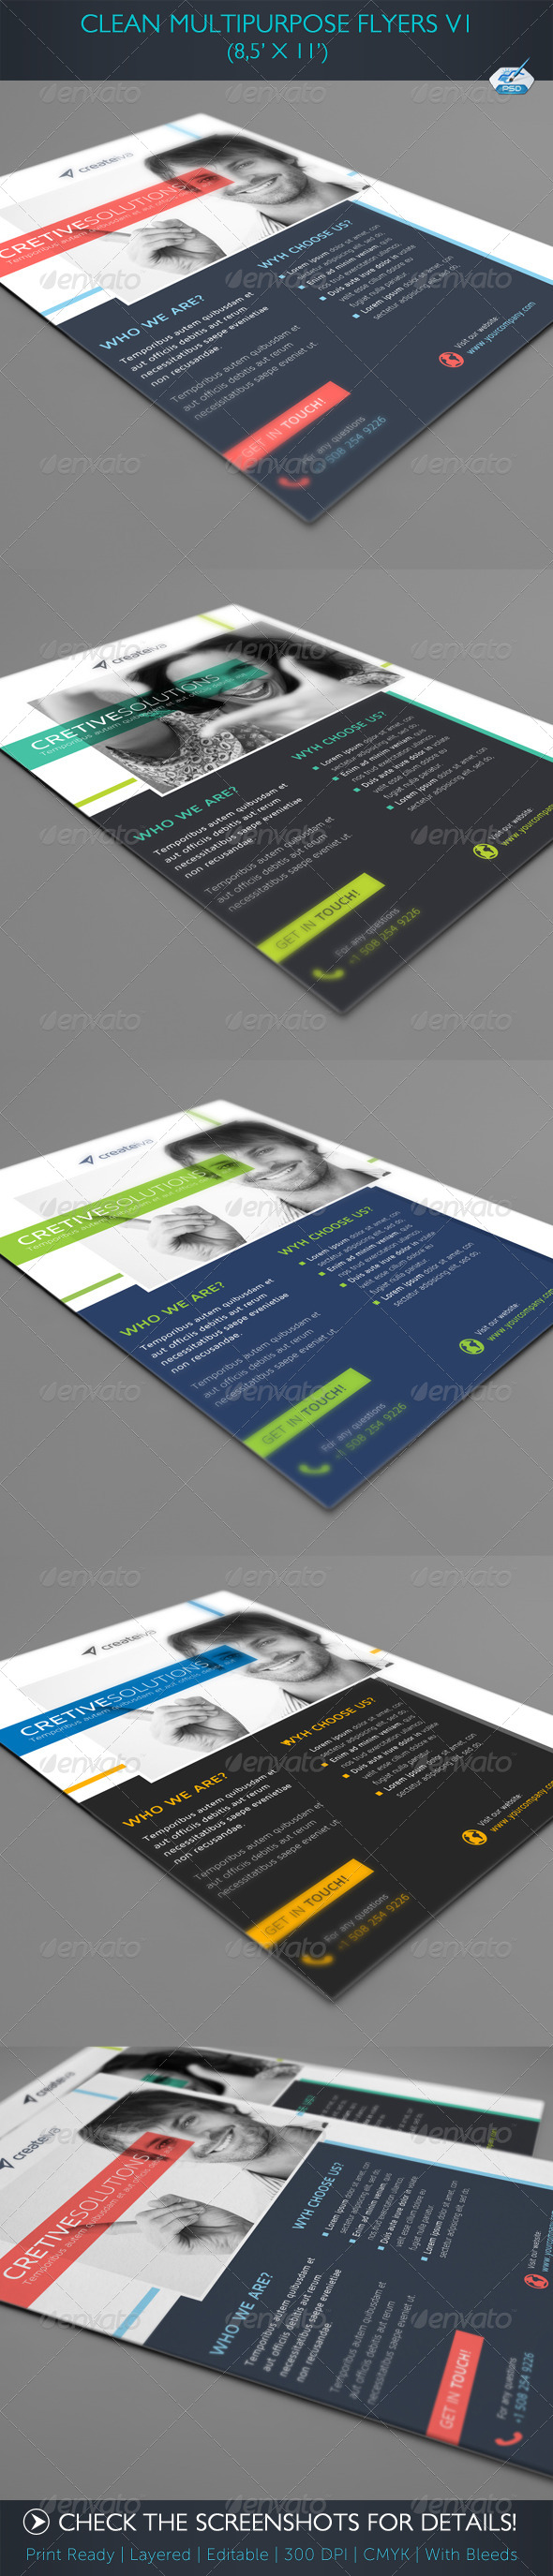 GraphicRiver Clean Multipurpose Flyers Vol1 5044673